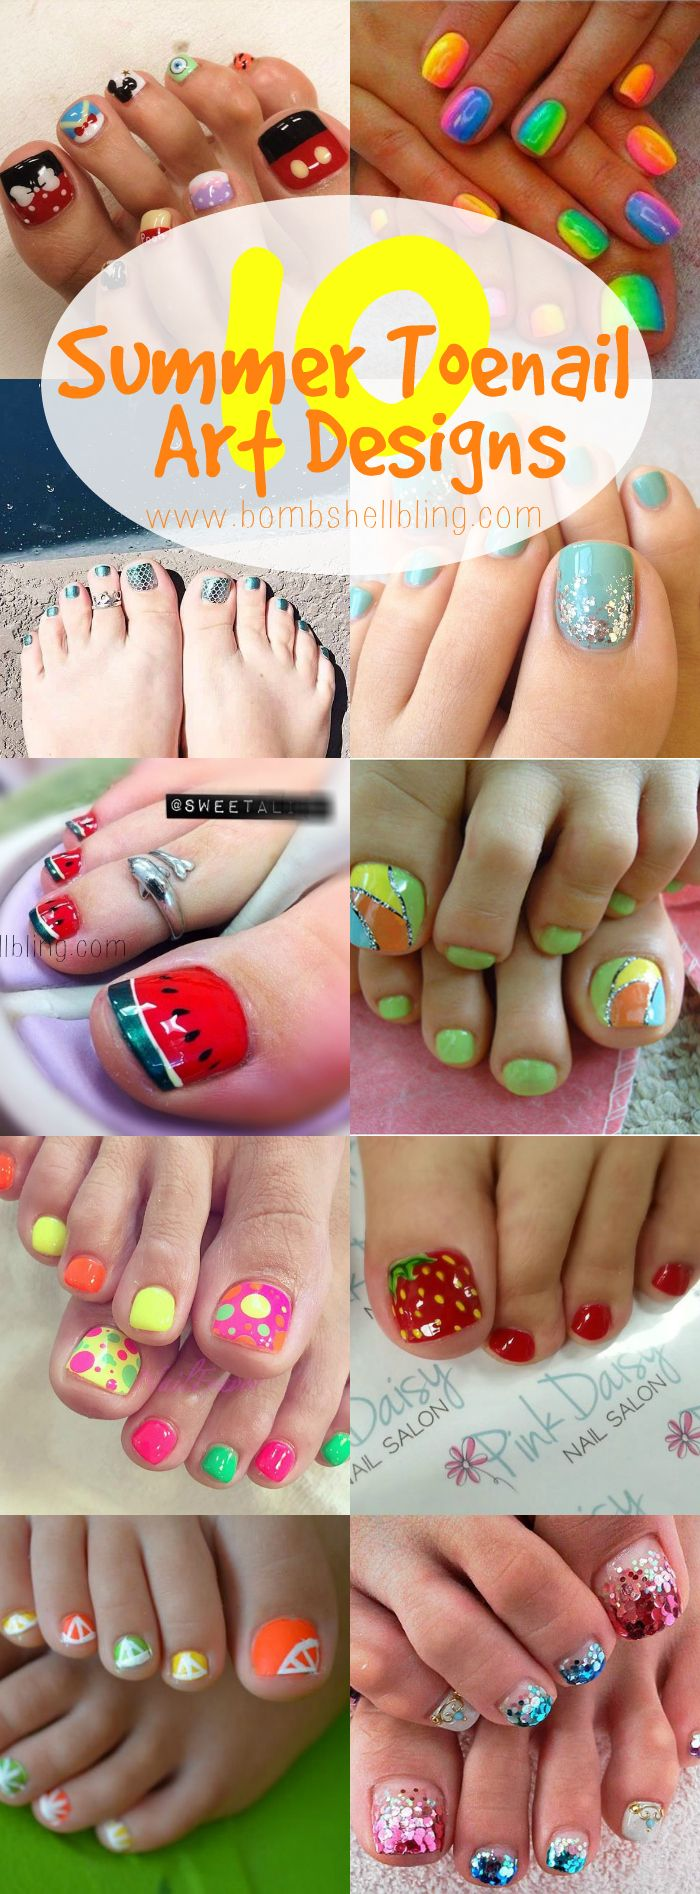 10 Ideas for Summer Toenail Art - Can\'t wait to do some of these ...